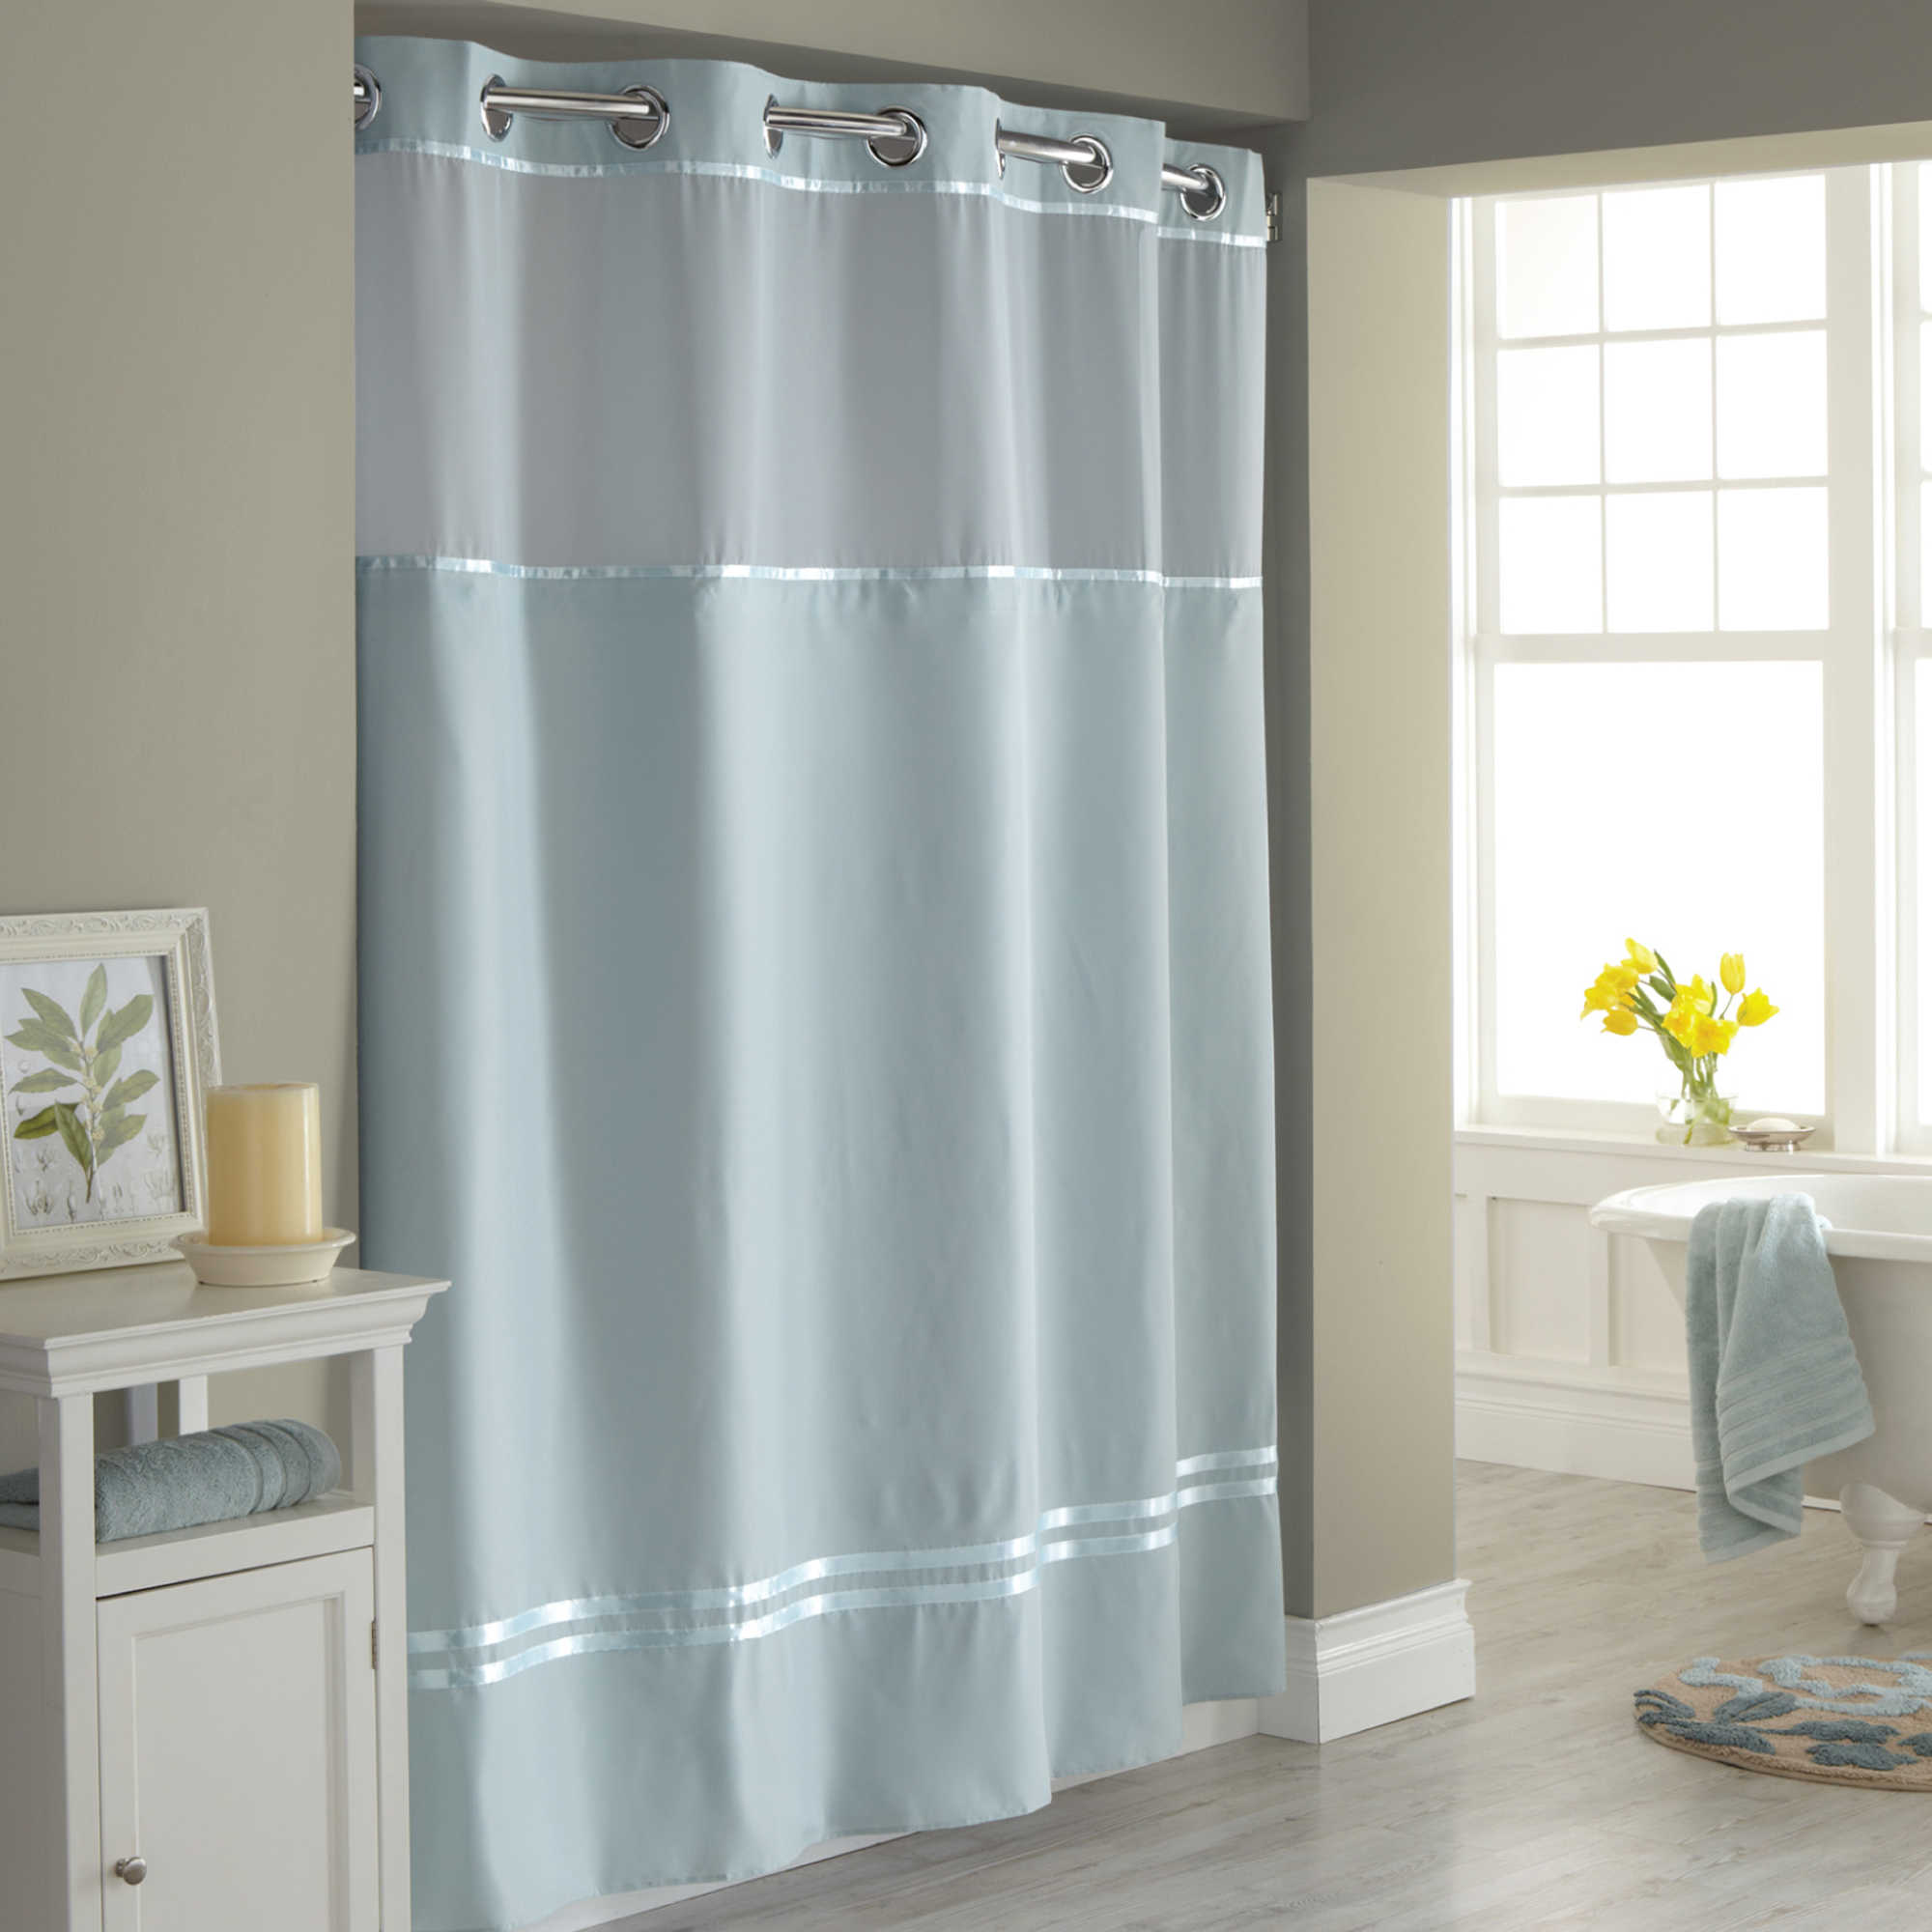 Bathroom window curtains with matching shower curtain - Image Of Hookless Escape Fabric Shower Curtain And Shower Curtain Liner Set